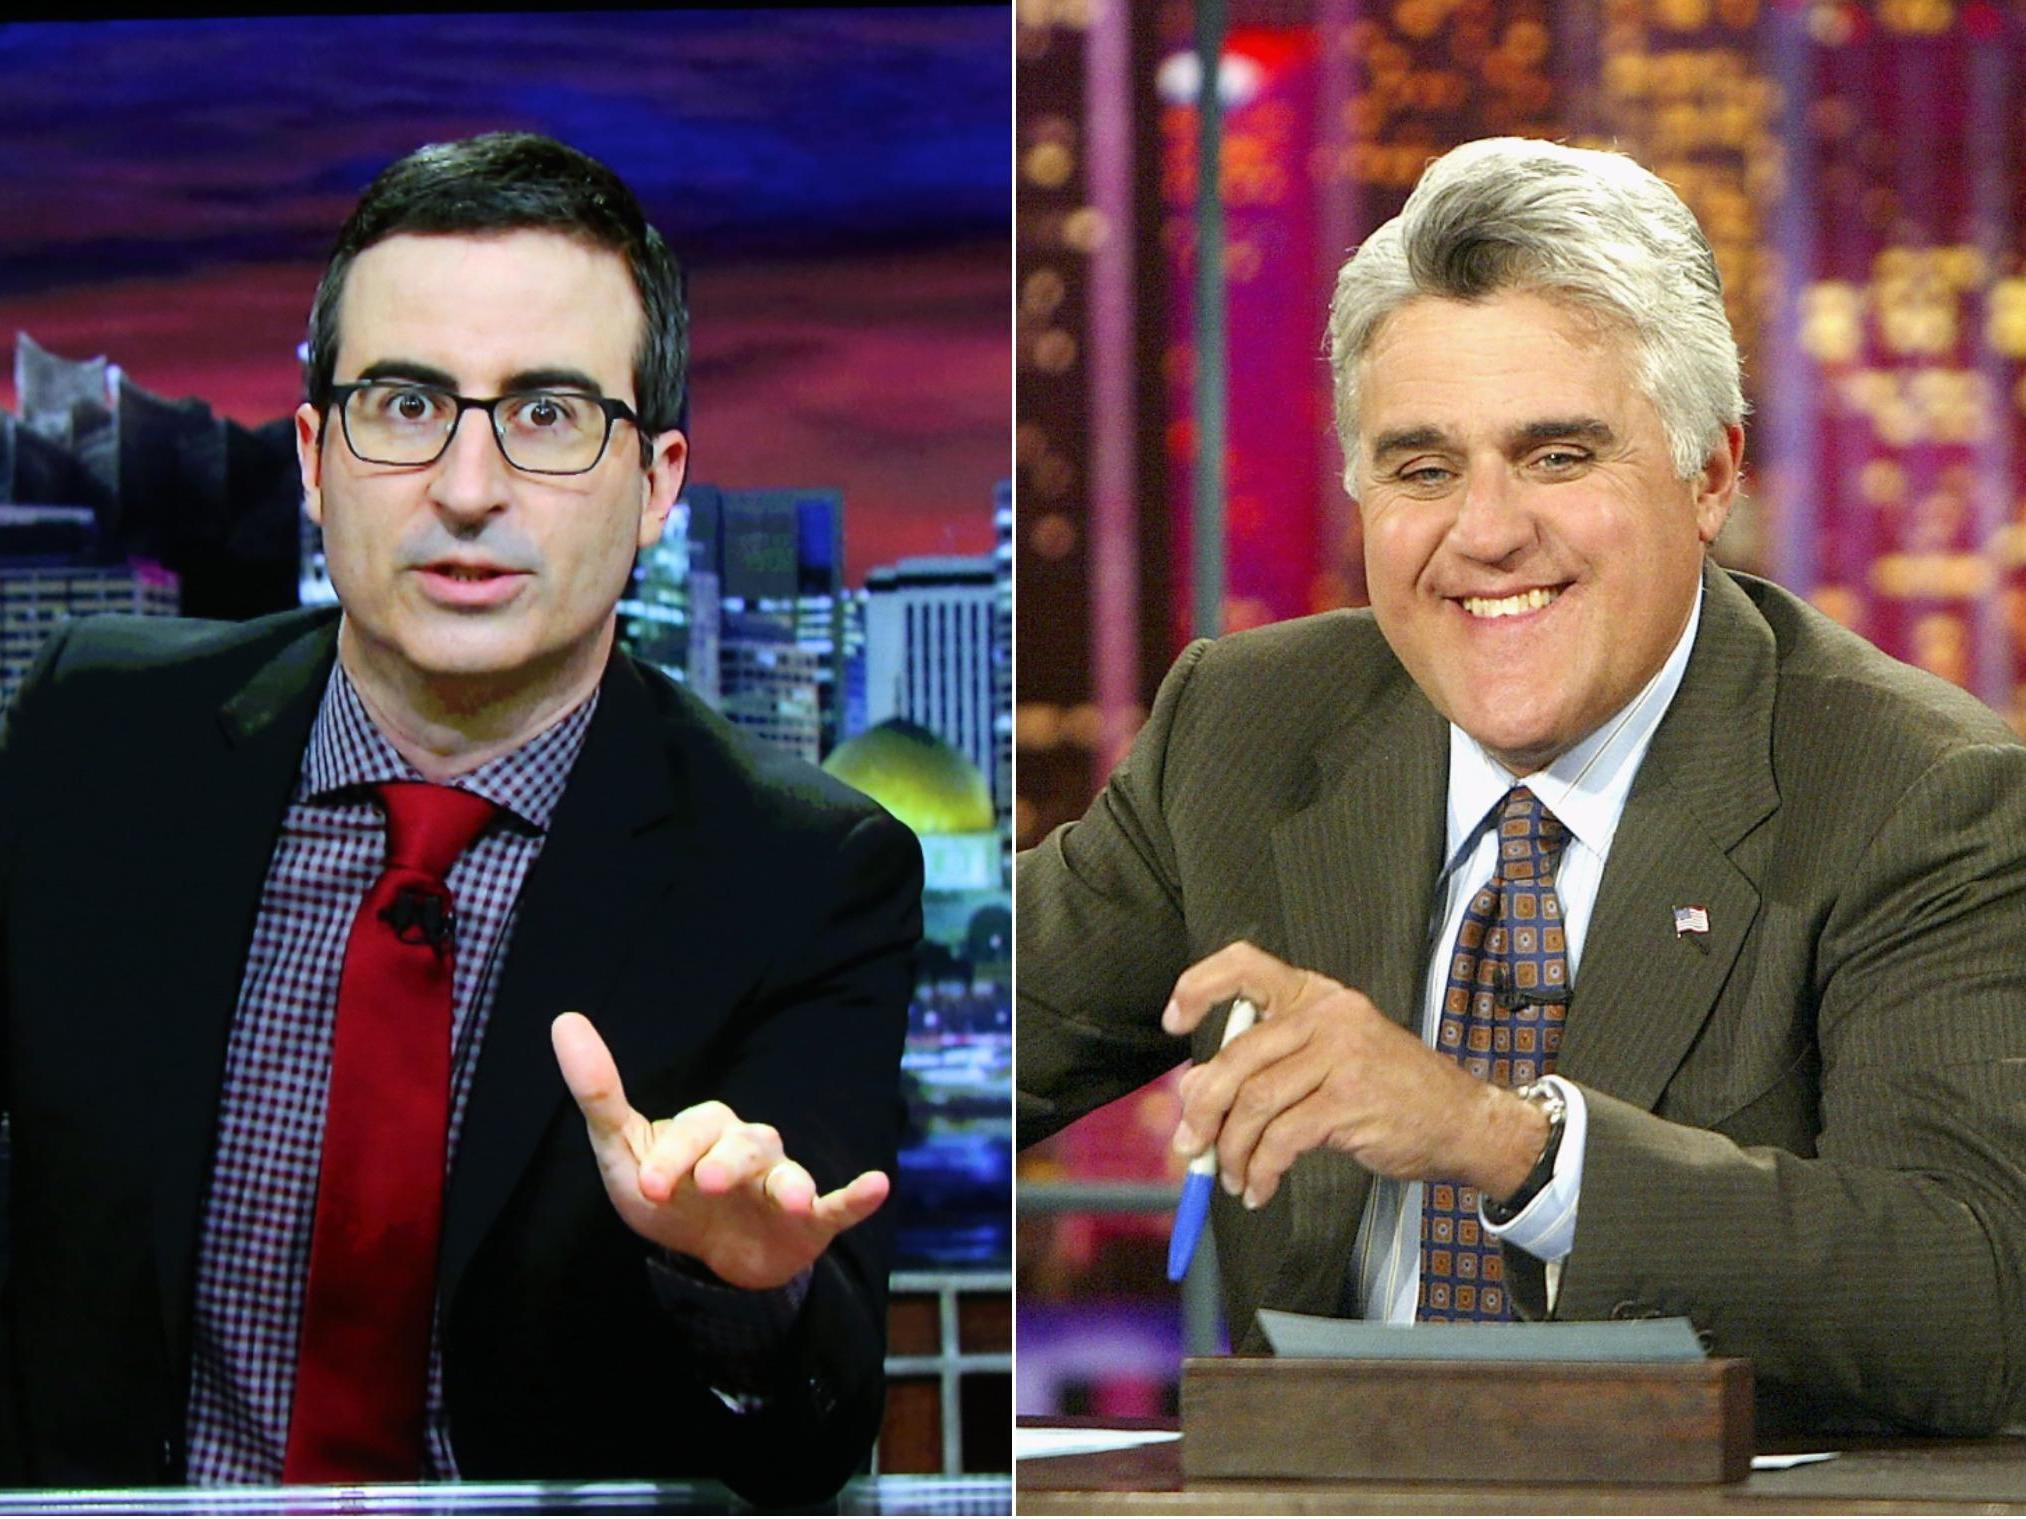 John Oliver tells Jay Leno to 'go f*** himself' in row over late night 'civility' comments